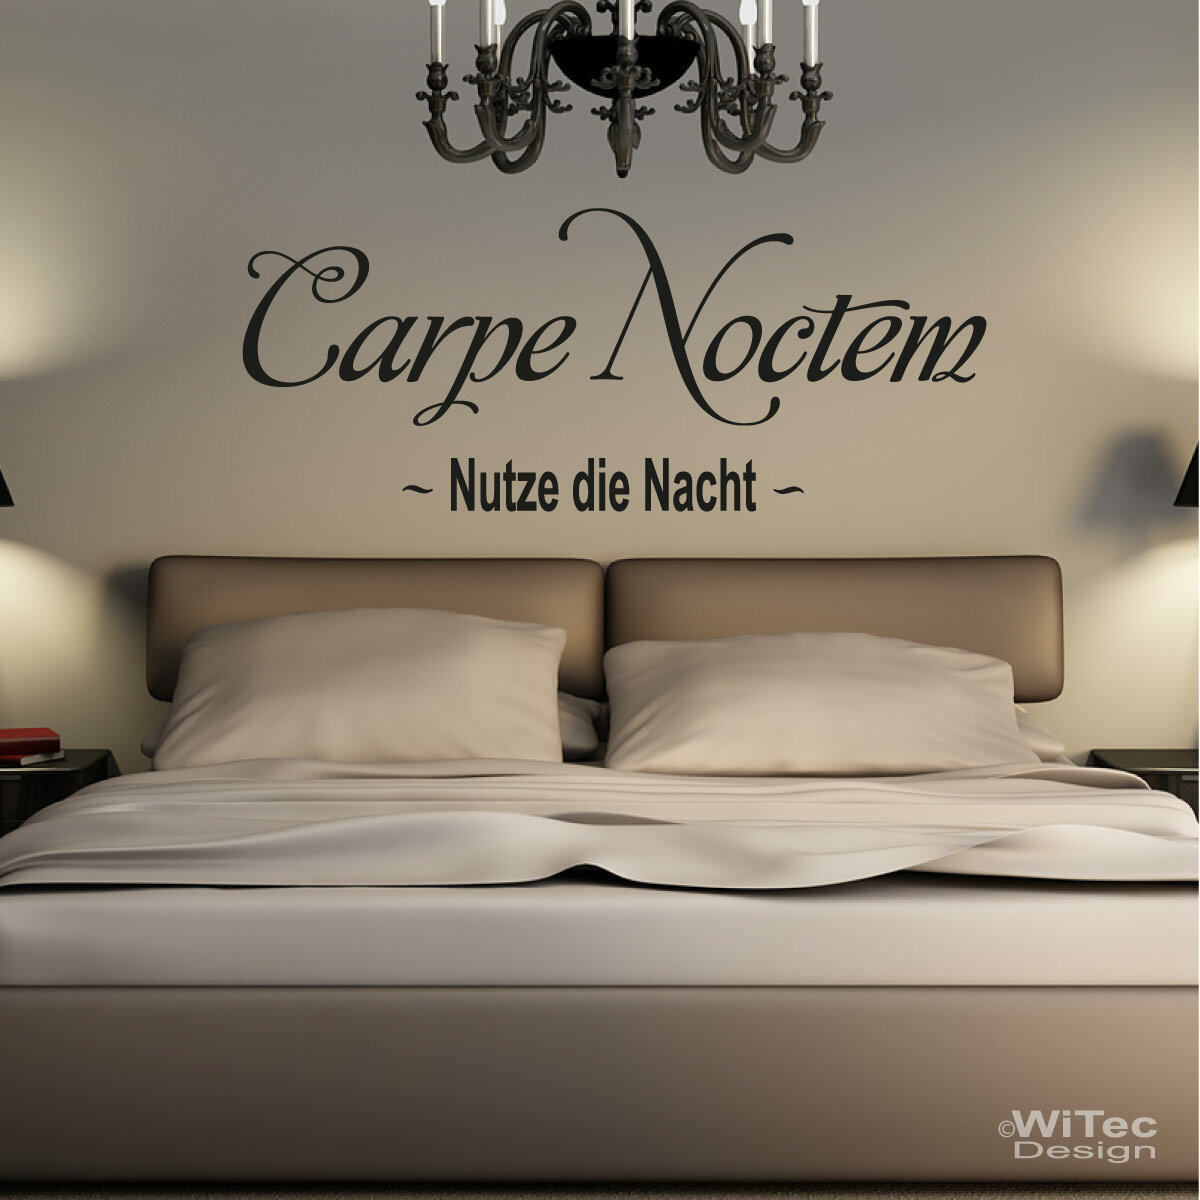 wandaufkleber carpe noctem wandtattoo nutze die nacht. Black Bedroom Furniture Sets. Home Design Ideas